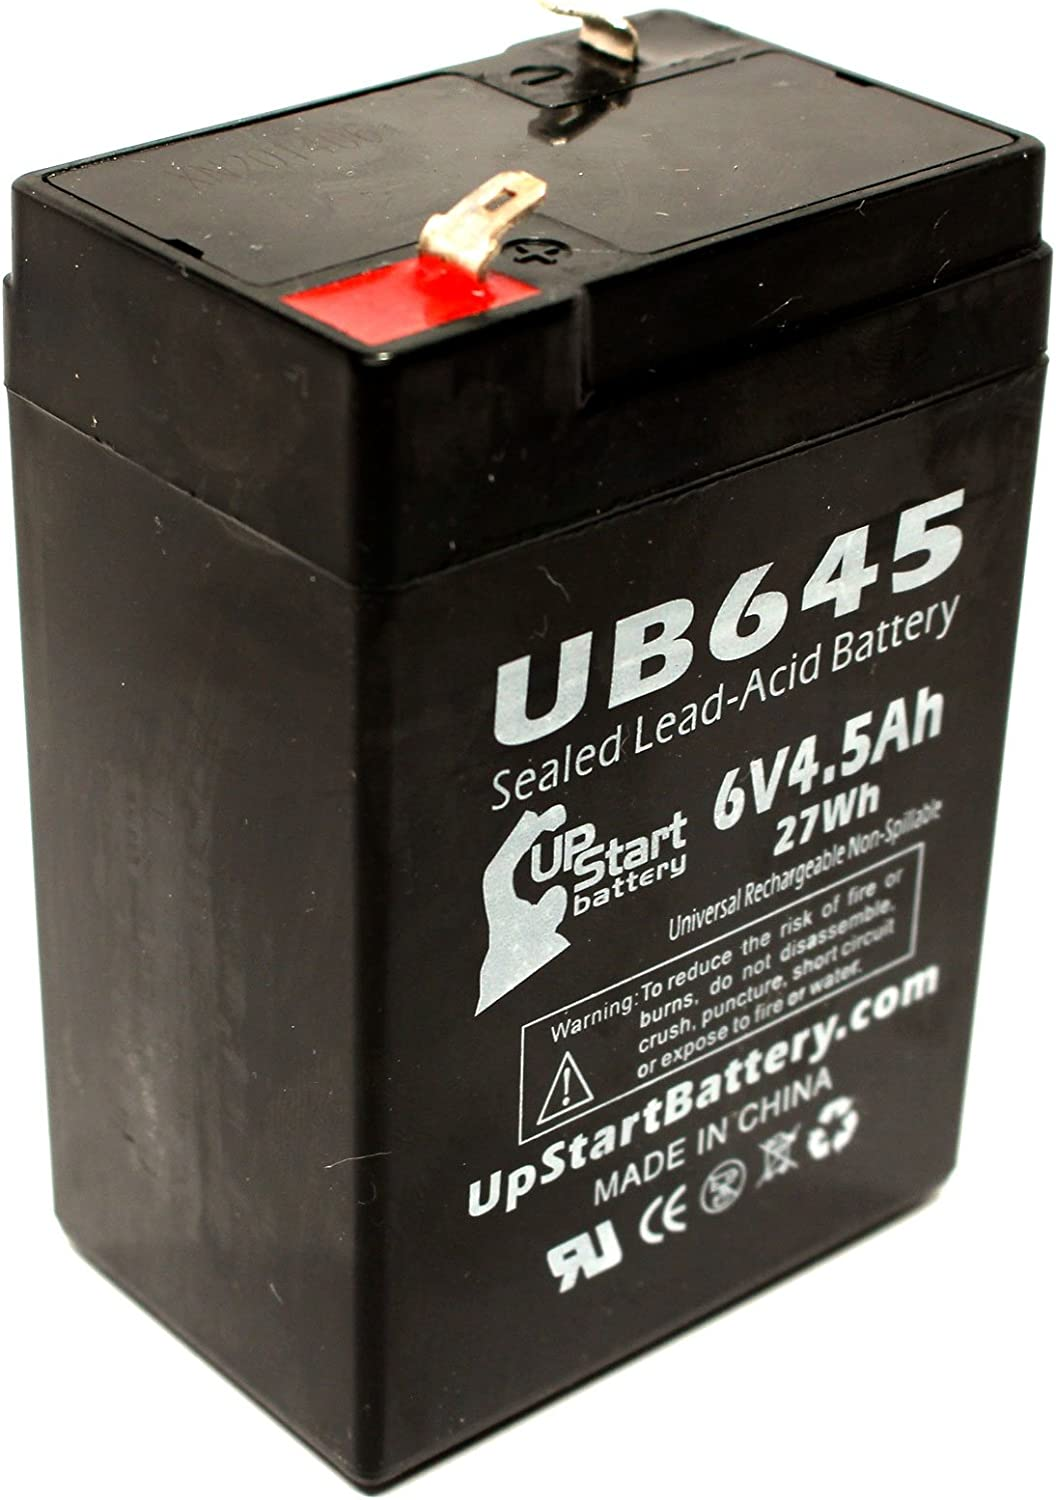 Replacement for Rcl RCL3000 Battery Replacement UB645 Universal Sealed Lead Acid Battery 6V, 4.5Ah, 4500mAh, F1 Terminal, AGM, SLA - Includes Two F1 to F2 Terminal Adapters